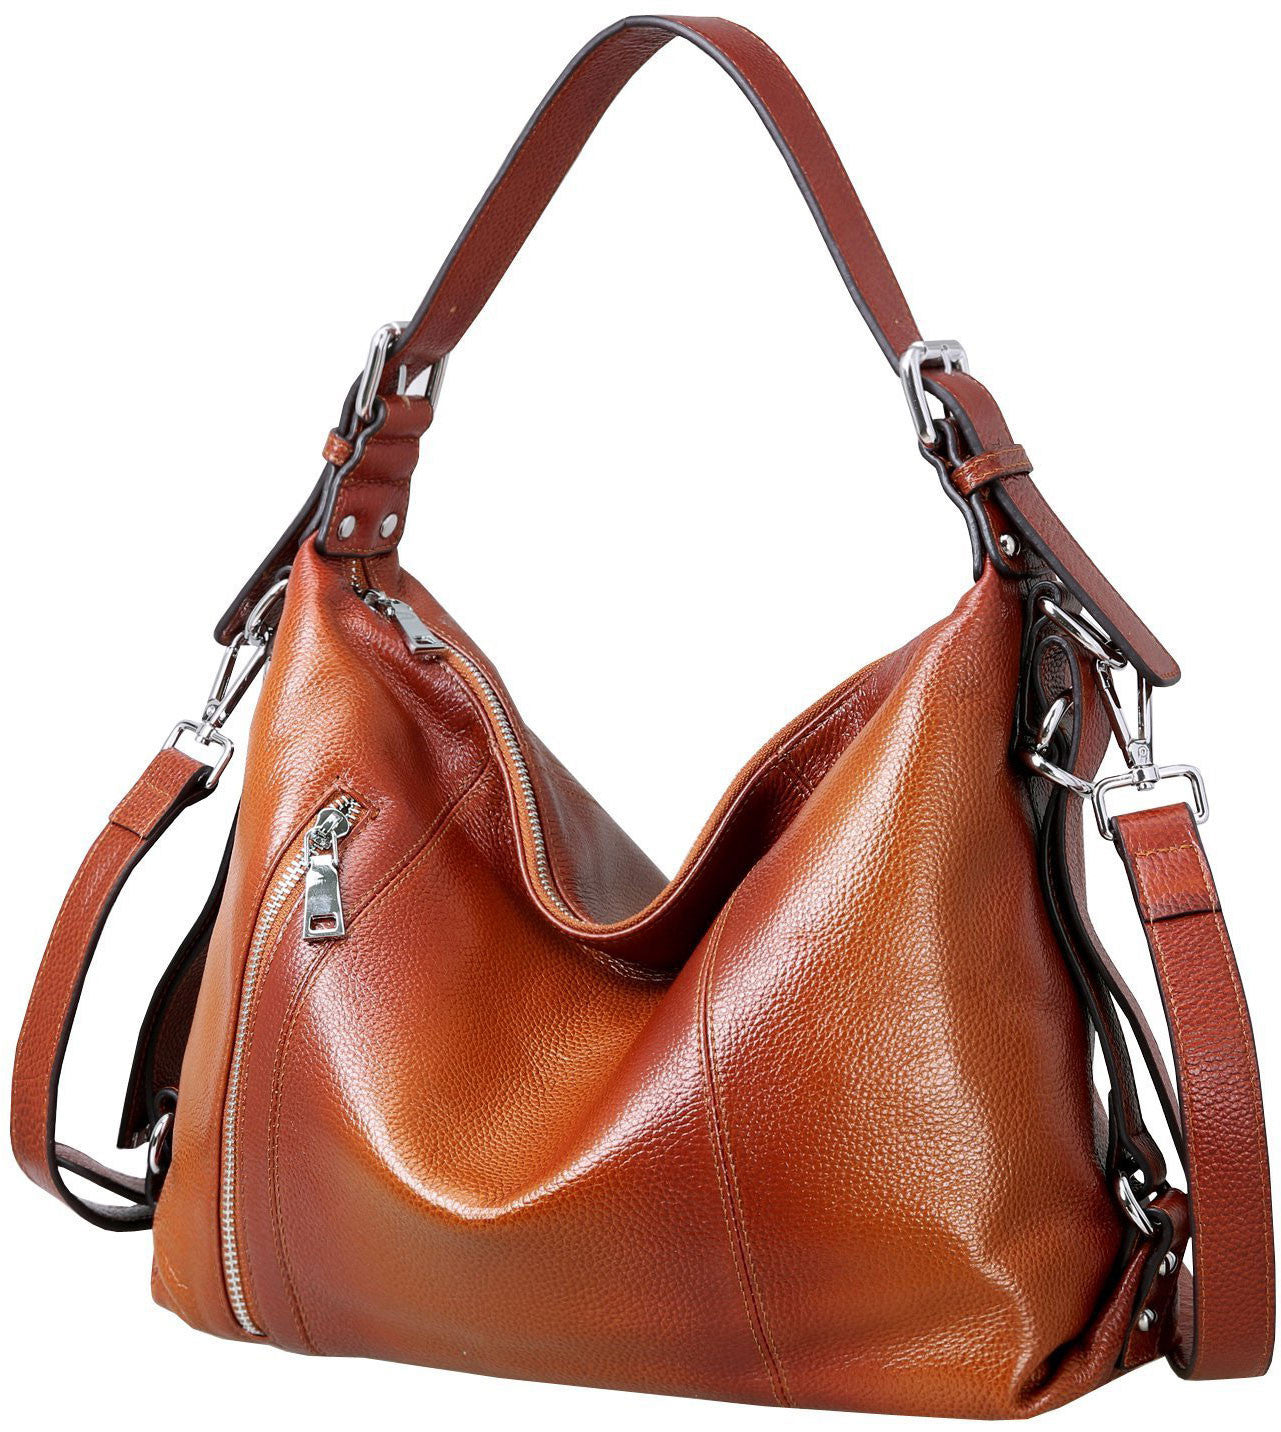 Women's leather crossbody bags with over the shoulder top handle. Burnt brown